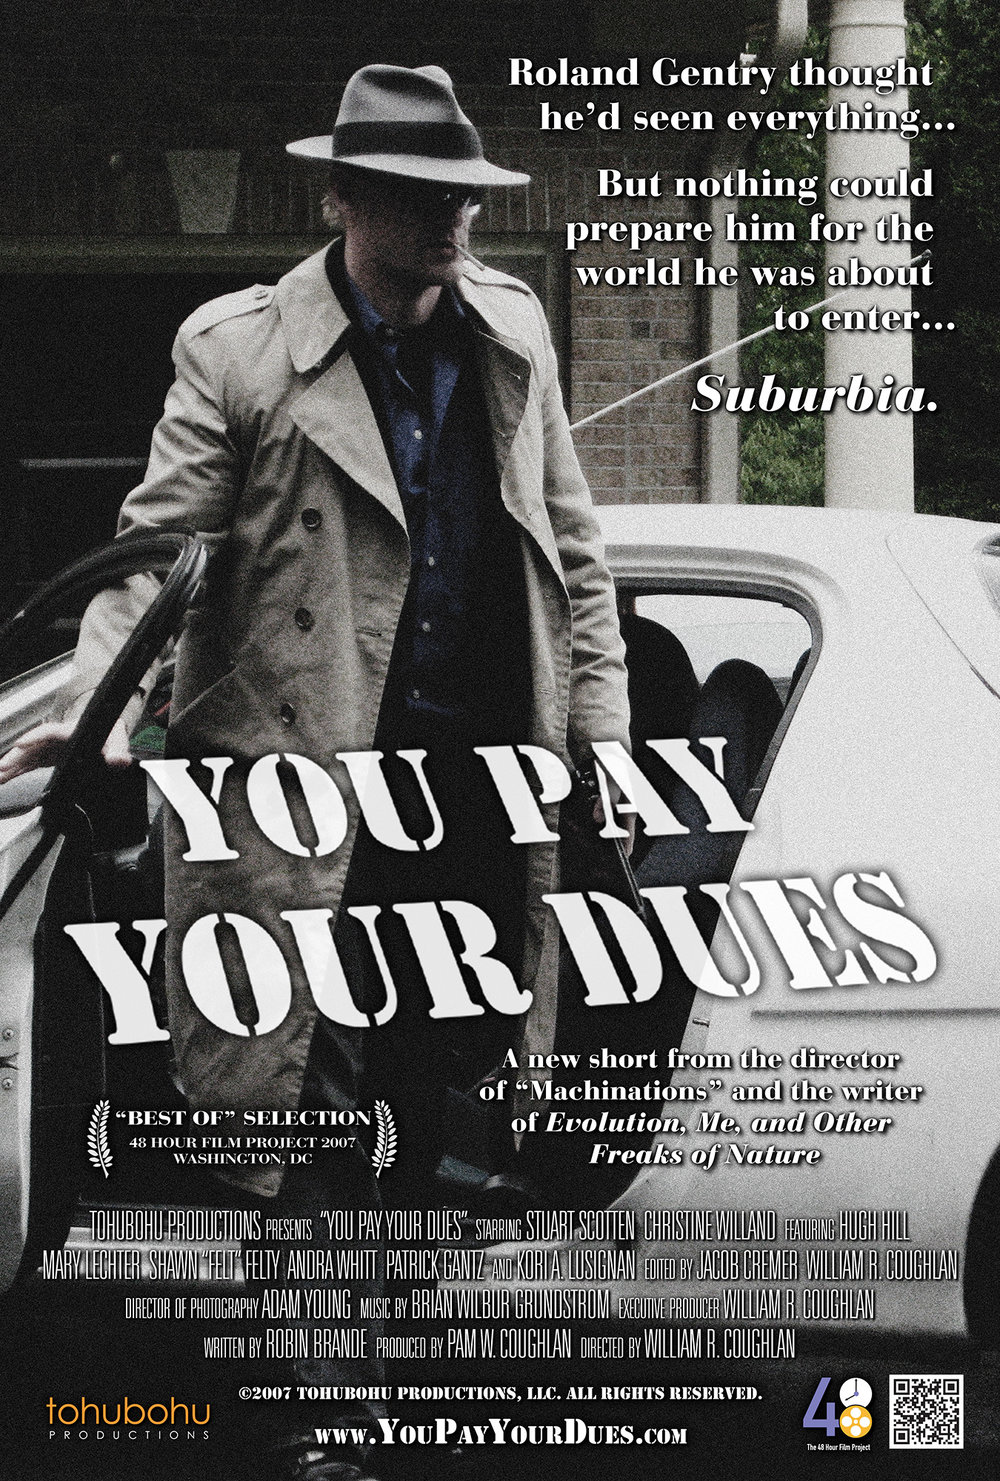 "You Pay Your Dues - 2007 · 8:00 · written by Robin Brande · produced by Pam W. Coughlan · directed by William R. CoughlanRoland ""Rolly"" Gentry is a hardened private eye who thought he'd seen it all. But when a mysterious woman steps into his office and asks him to have a ""talk"" with her ex-husband, Rolly is tossed into a seedy world where not even his entire collection of self-help books and CDs can assist him: Suburbia. As he delves ever deeper into the darkest corners of homeowners' association politics, he faces a threat not only to the façade of stabilty society presents, but to the inner wisdom within his own secret soul.Director William R. Coughlan and producer Pam W. Coughlan are back with this short for the 48 Hour Film Project, from a script by author/blogger Robin Brande. Produced entirely from May 4th through the 6th, ""You Pay Your Dues"" was Tohubohu's fifth entry in the competition, and premiered at the AFI Silver Theatre on Thursday, May 10."